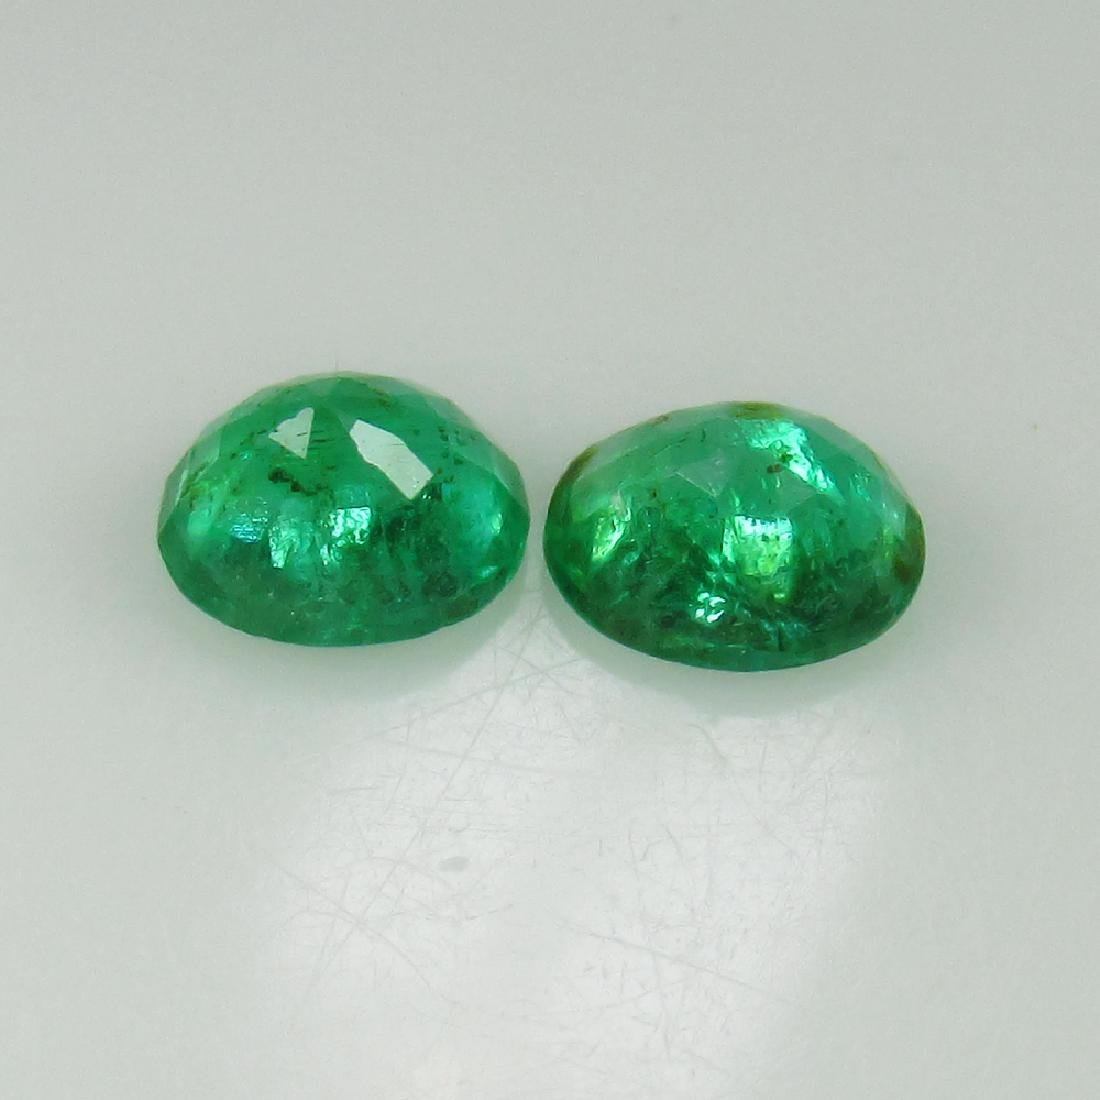 0.64 Ctw Natural Zambian Emerald 5x4 mm Oval Pair - 2